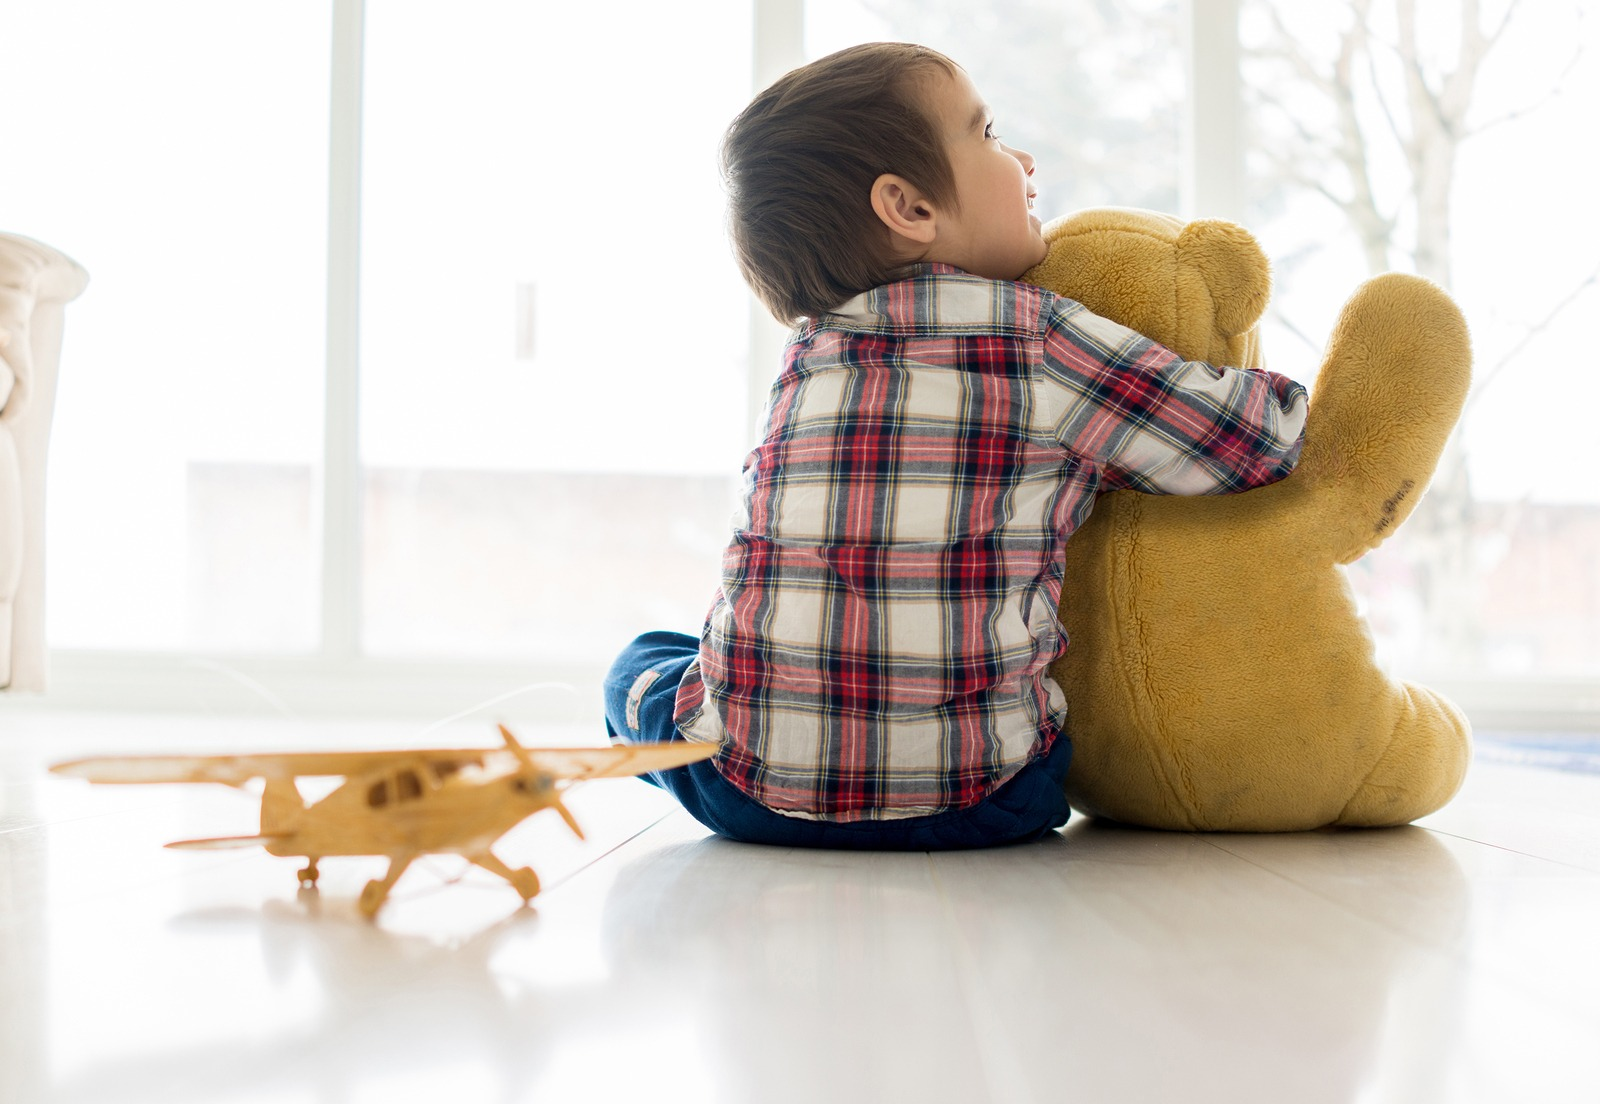 Child sitting in living room with Teddy bear